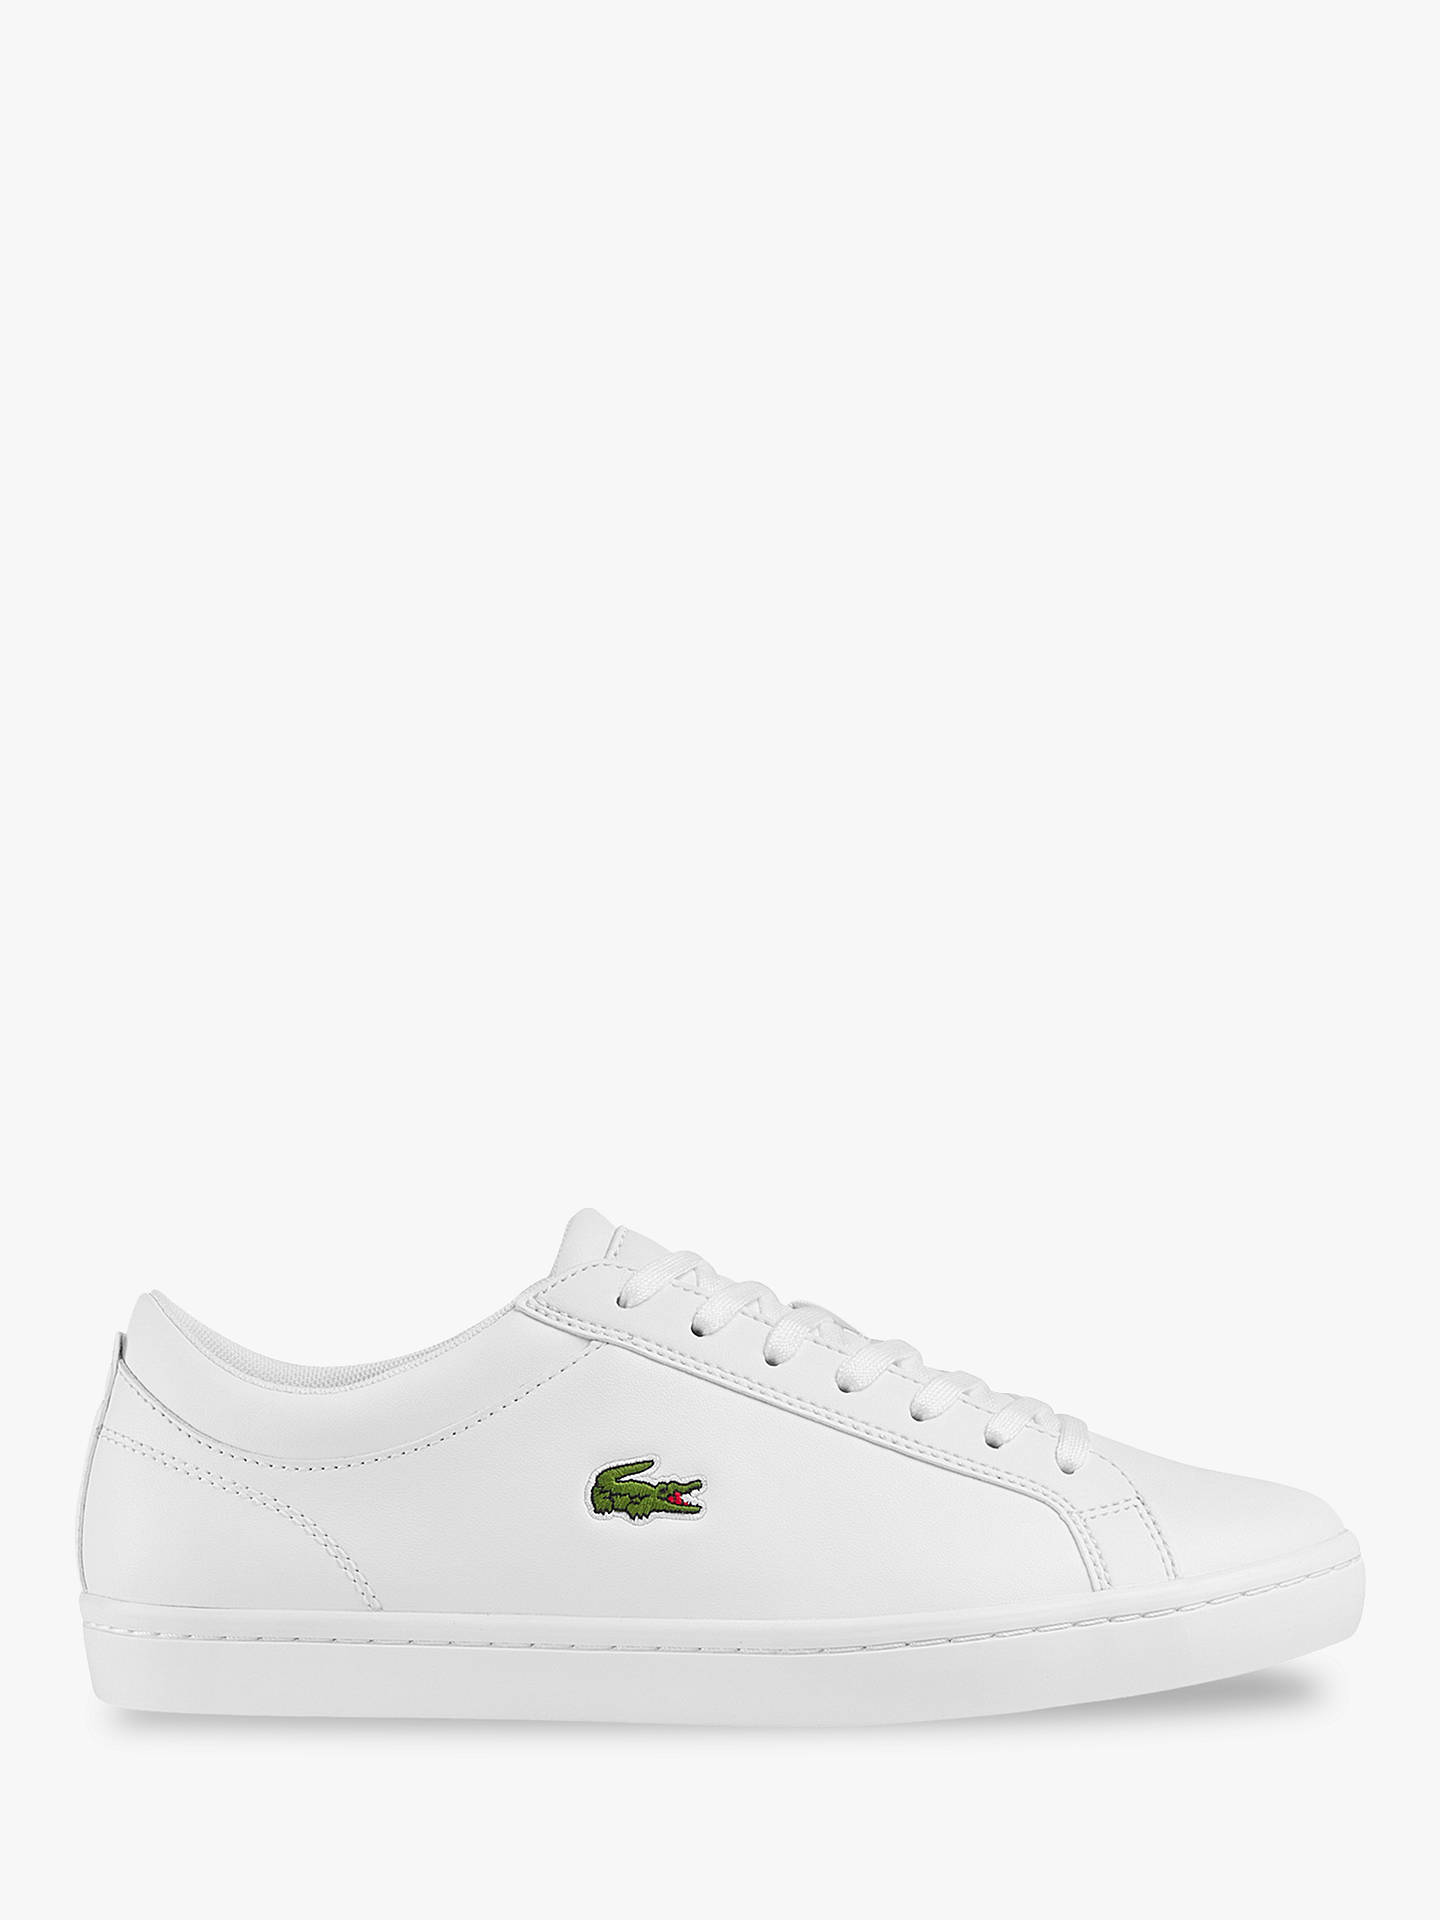 24c4ca619d80a Buy Lacoste Straightset Trainers